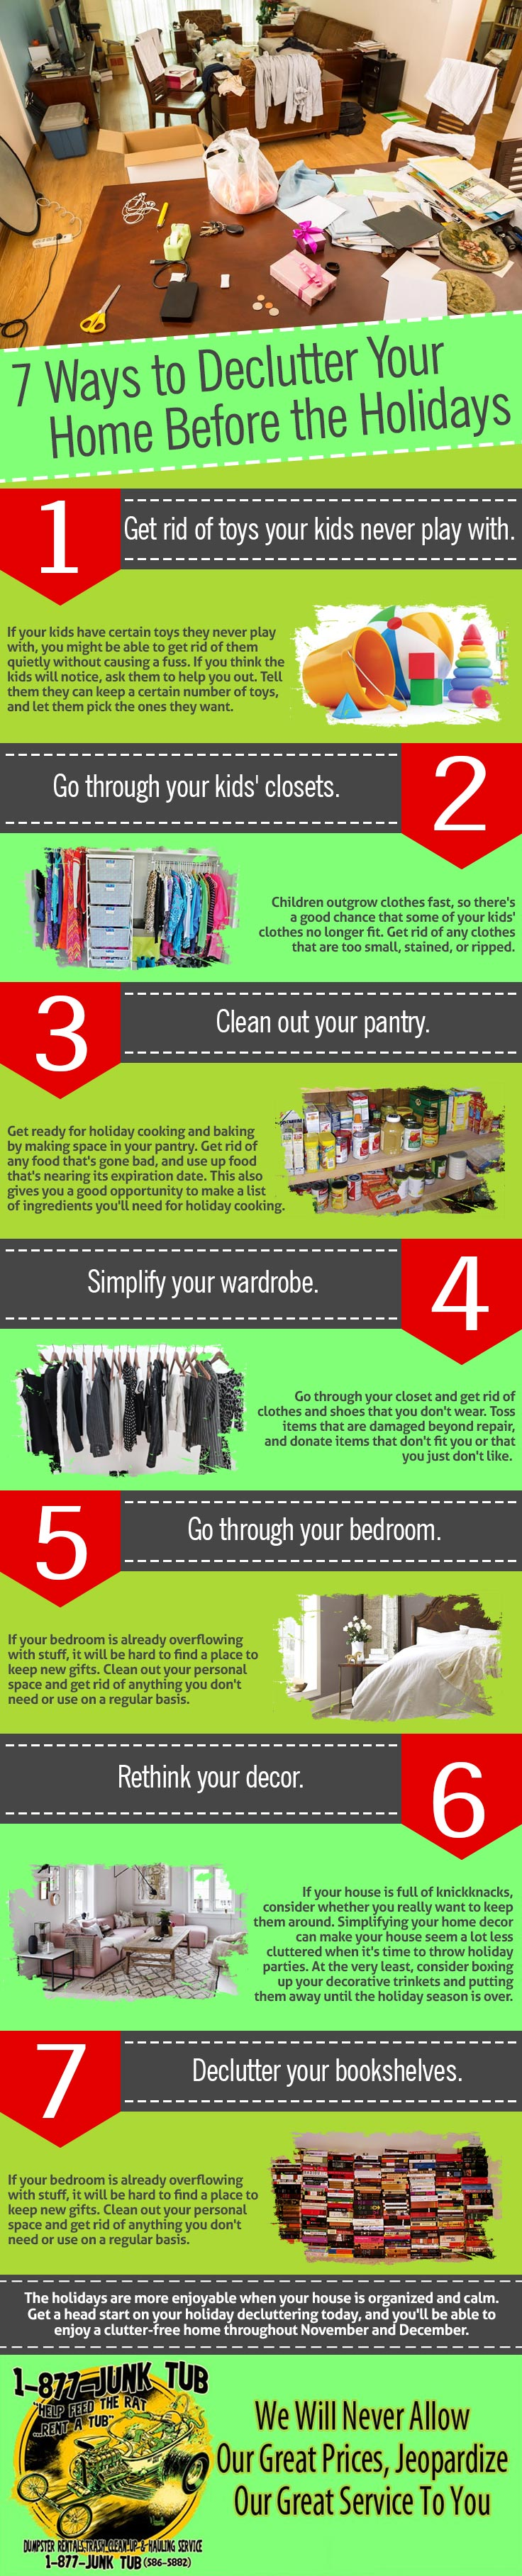 7 Ways to Declutter Your Home Before the Holidays